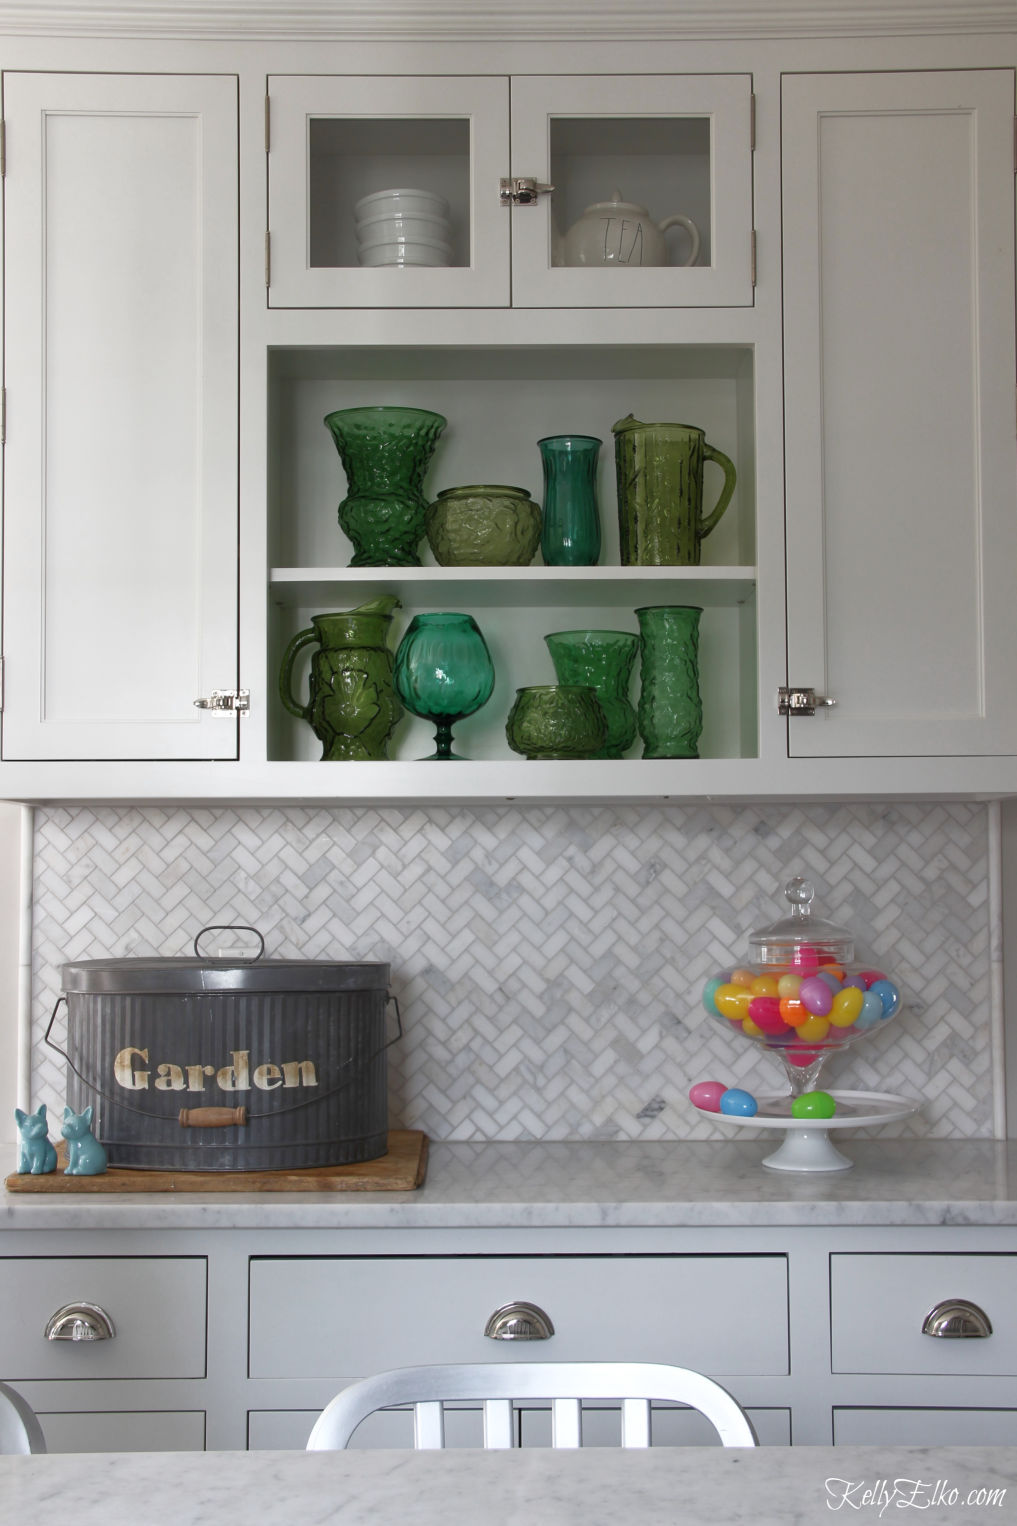 Love this white kitchen with open shelves displaying a vintage green glass collection kellyelko.com #kitchen #kitchendecor #openshelves #collection #vintagedecor #springdecor